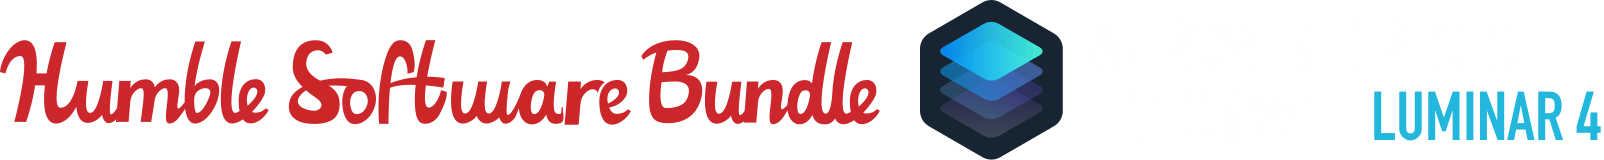 Humble Software Bundle: AI-Powered Photo Editor with Luminar 4